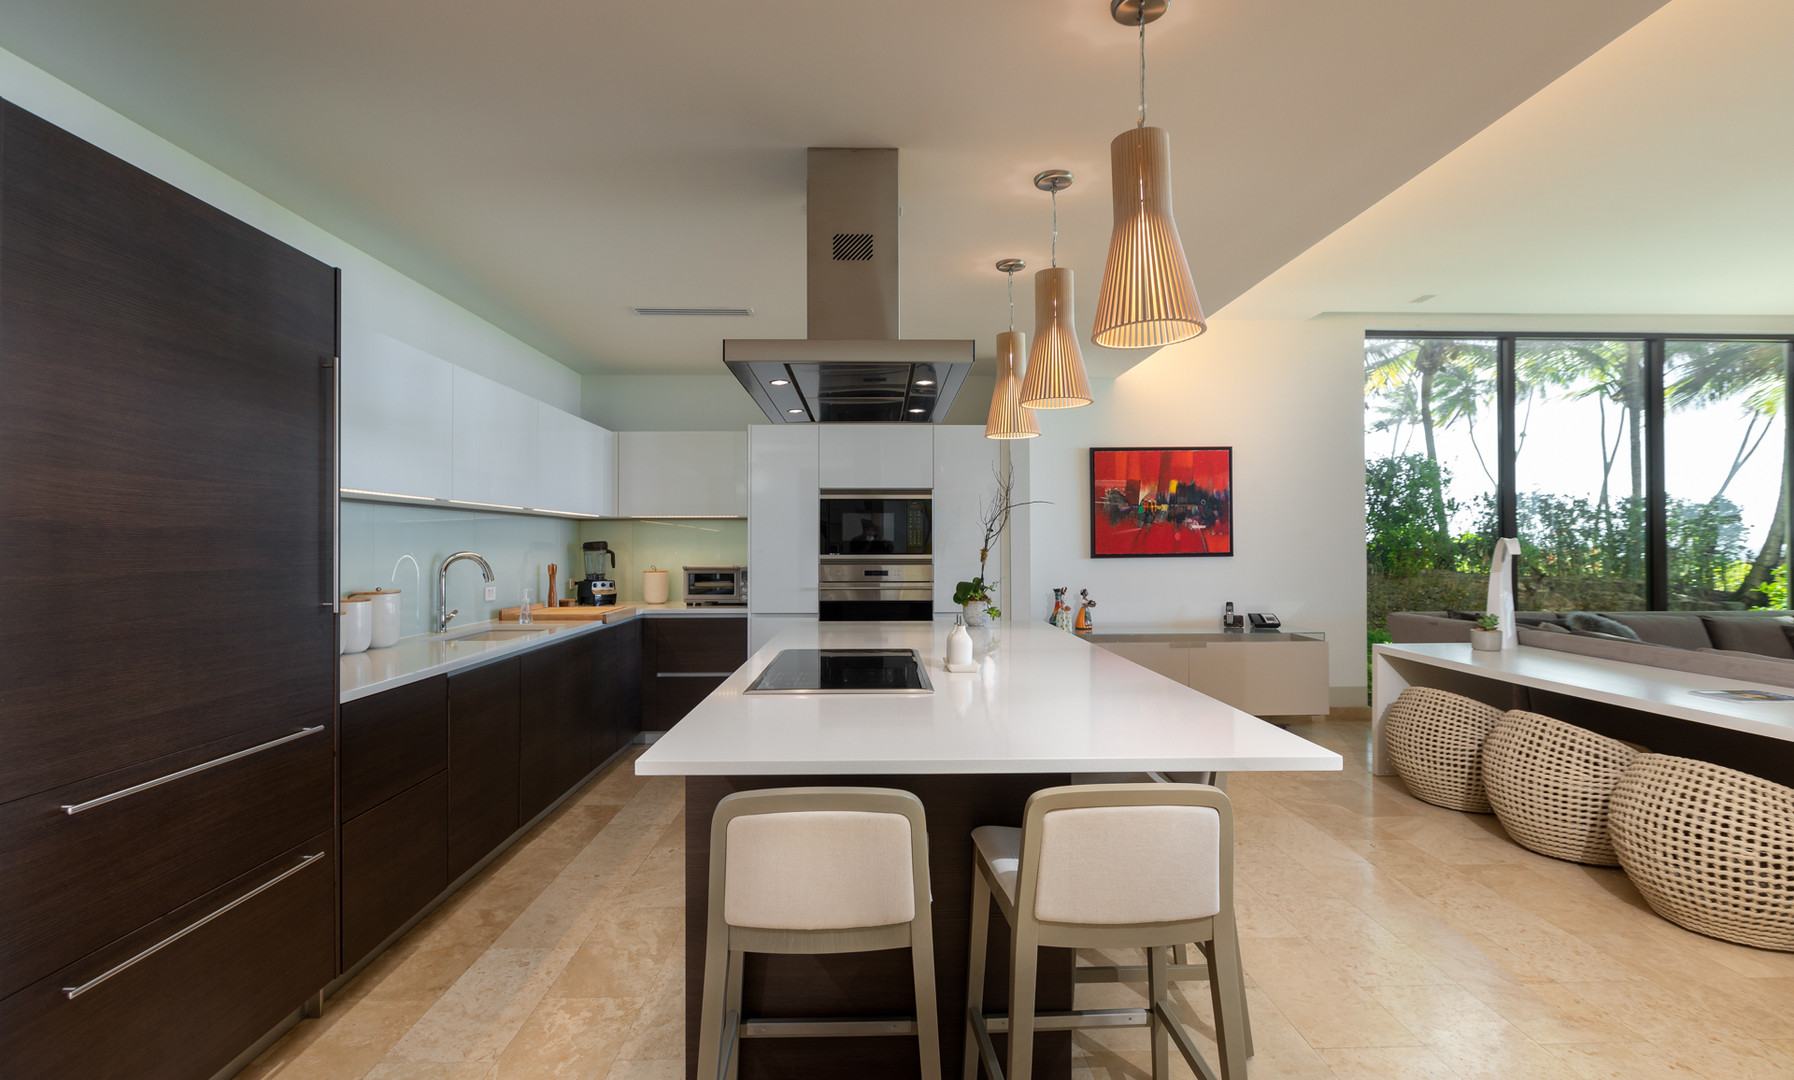 West Beach - Kitchen and Dining Room